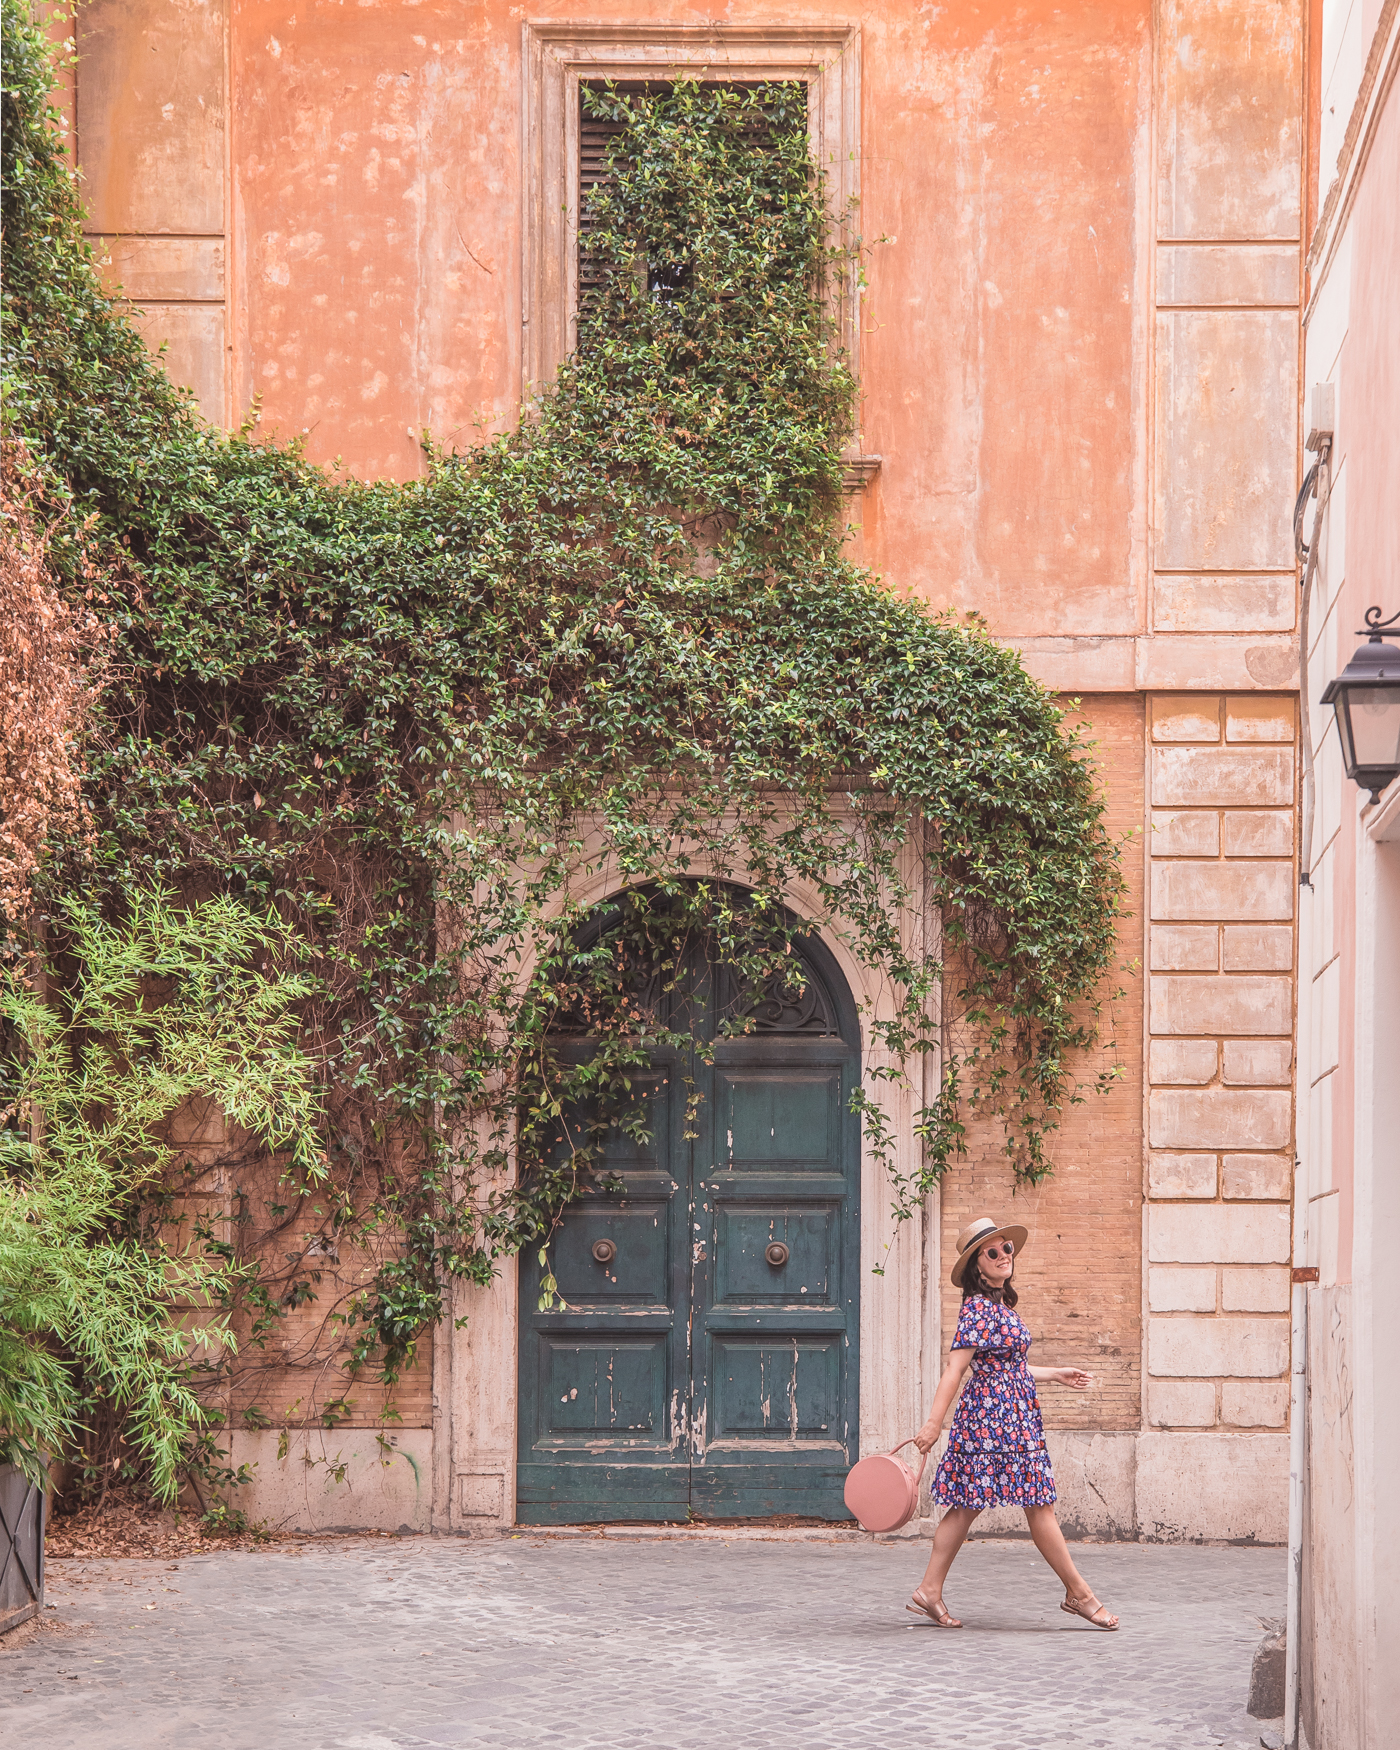 The Prettiest Streets in Rome